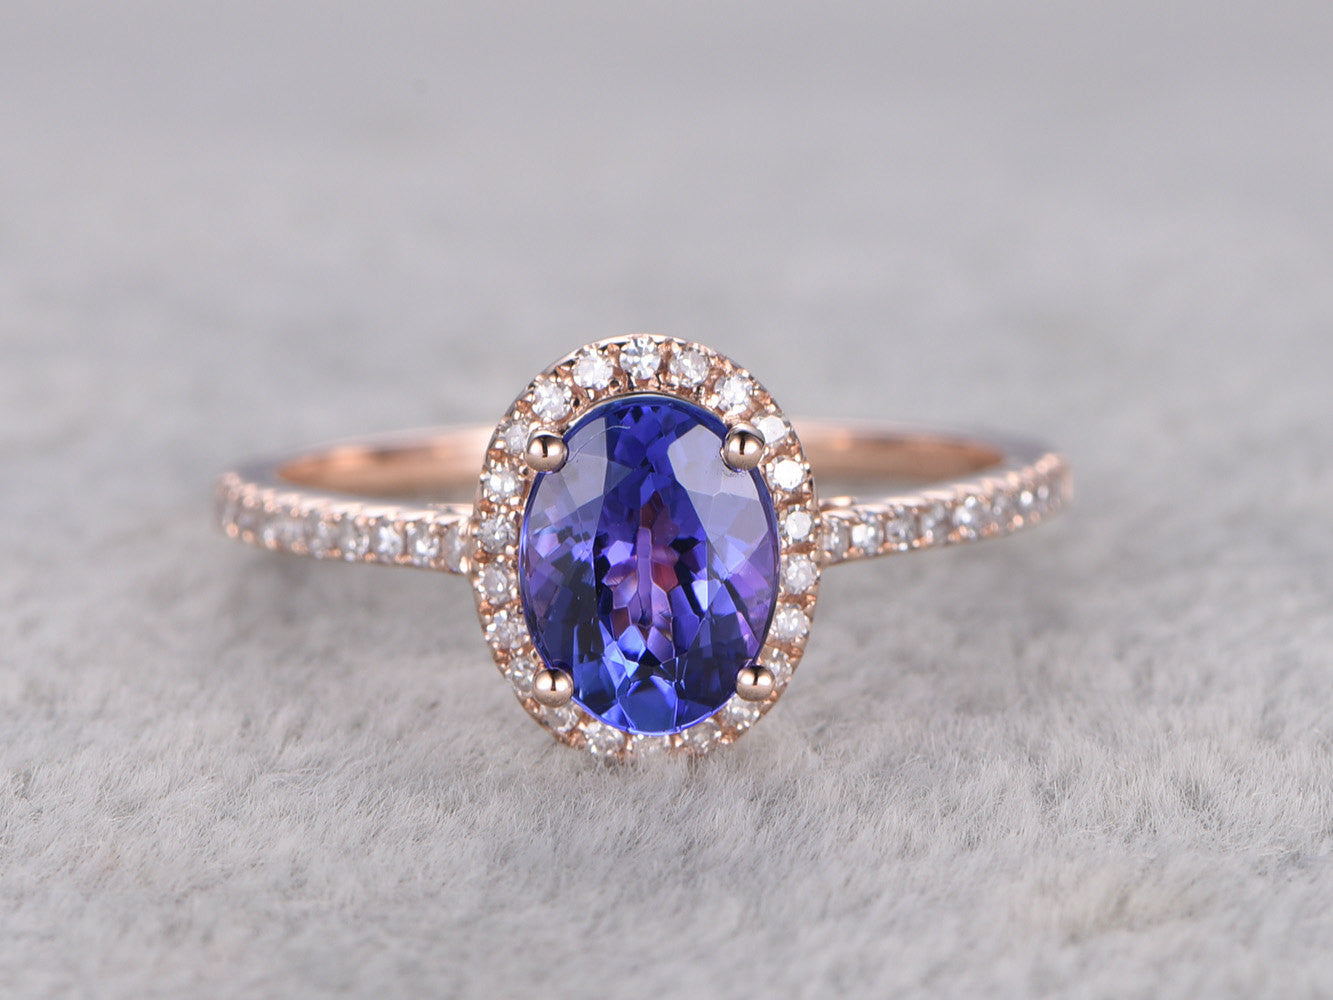 6x8mm Oval Cut Tanzanite Engagement ring,Diamond Promise Ring,14K Rose Gold,Bridal Ring,wedding band,Blue Gem Stone ring,Ball Prong set